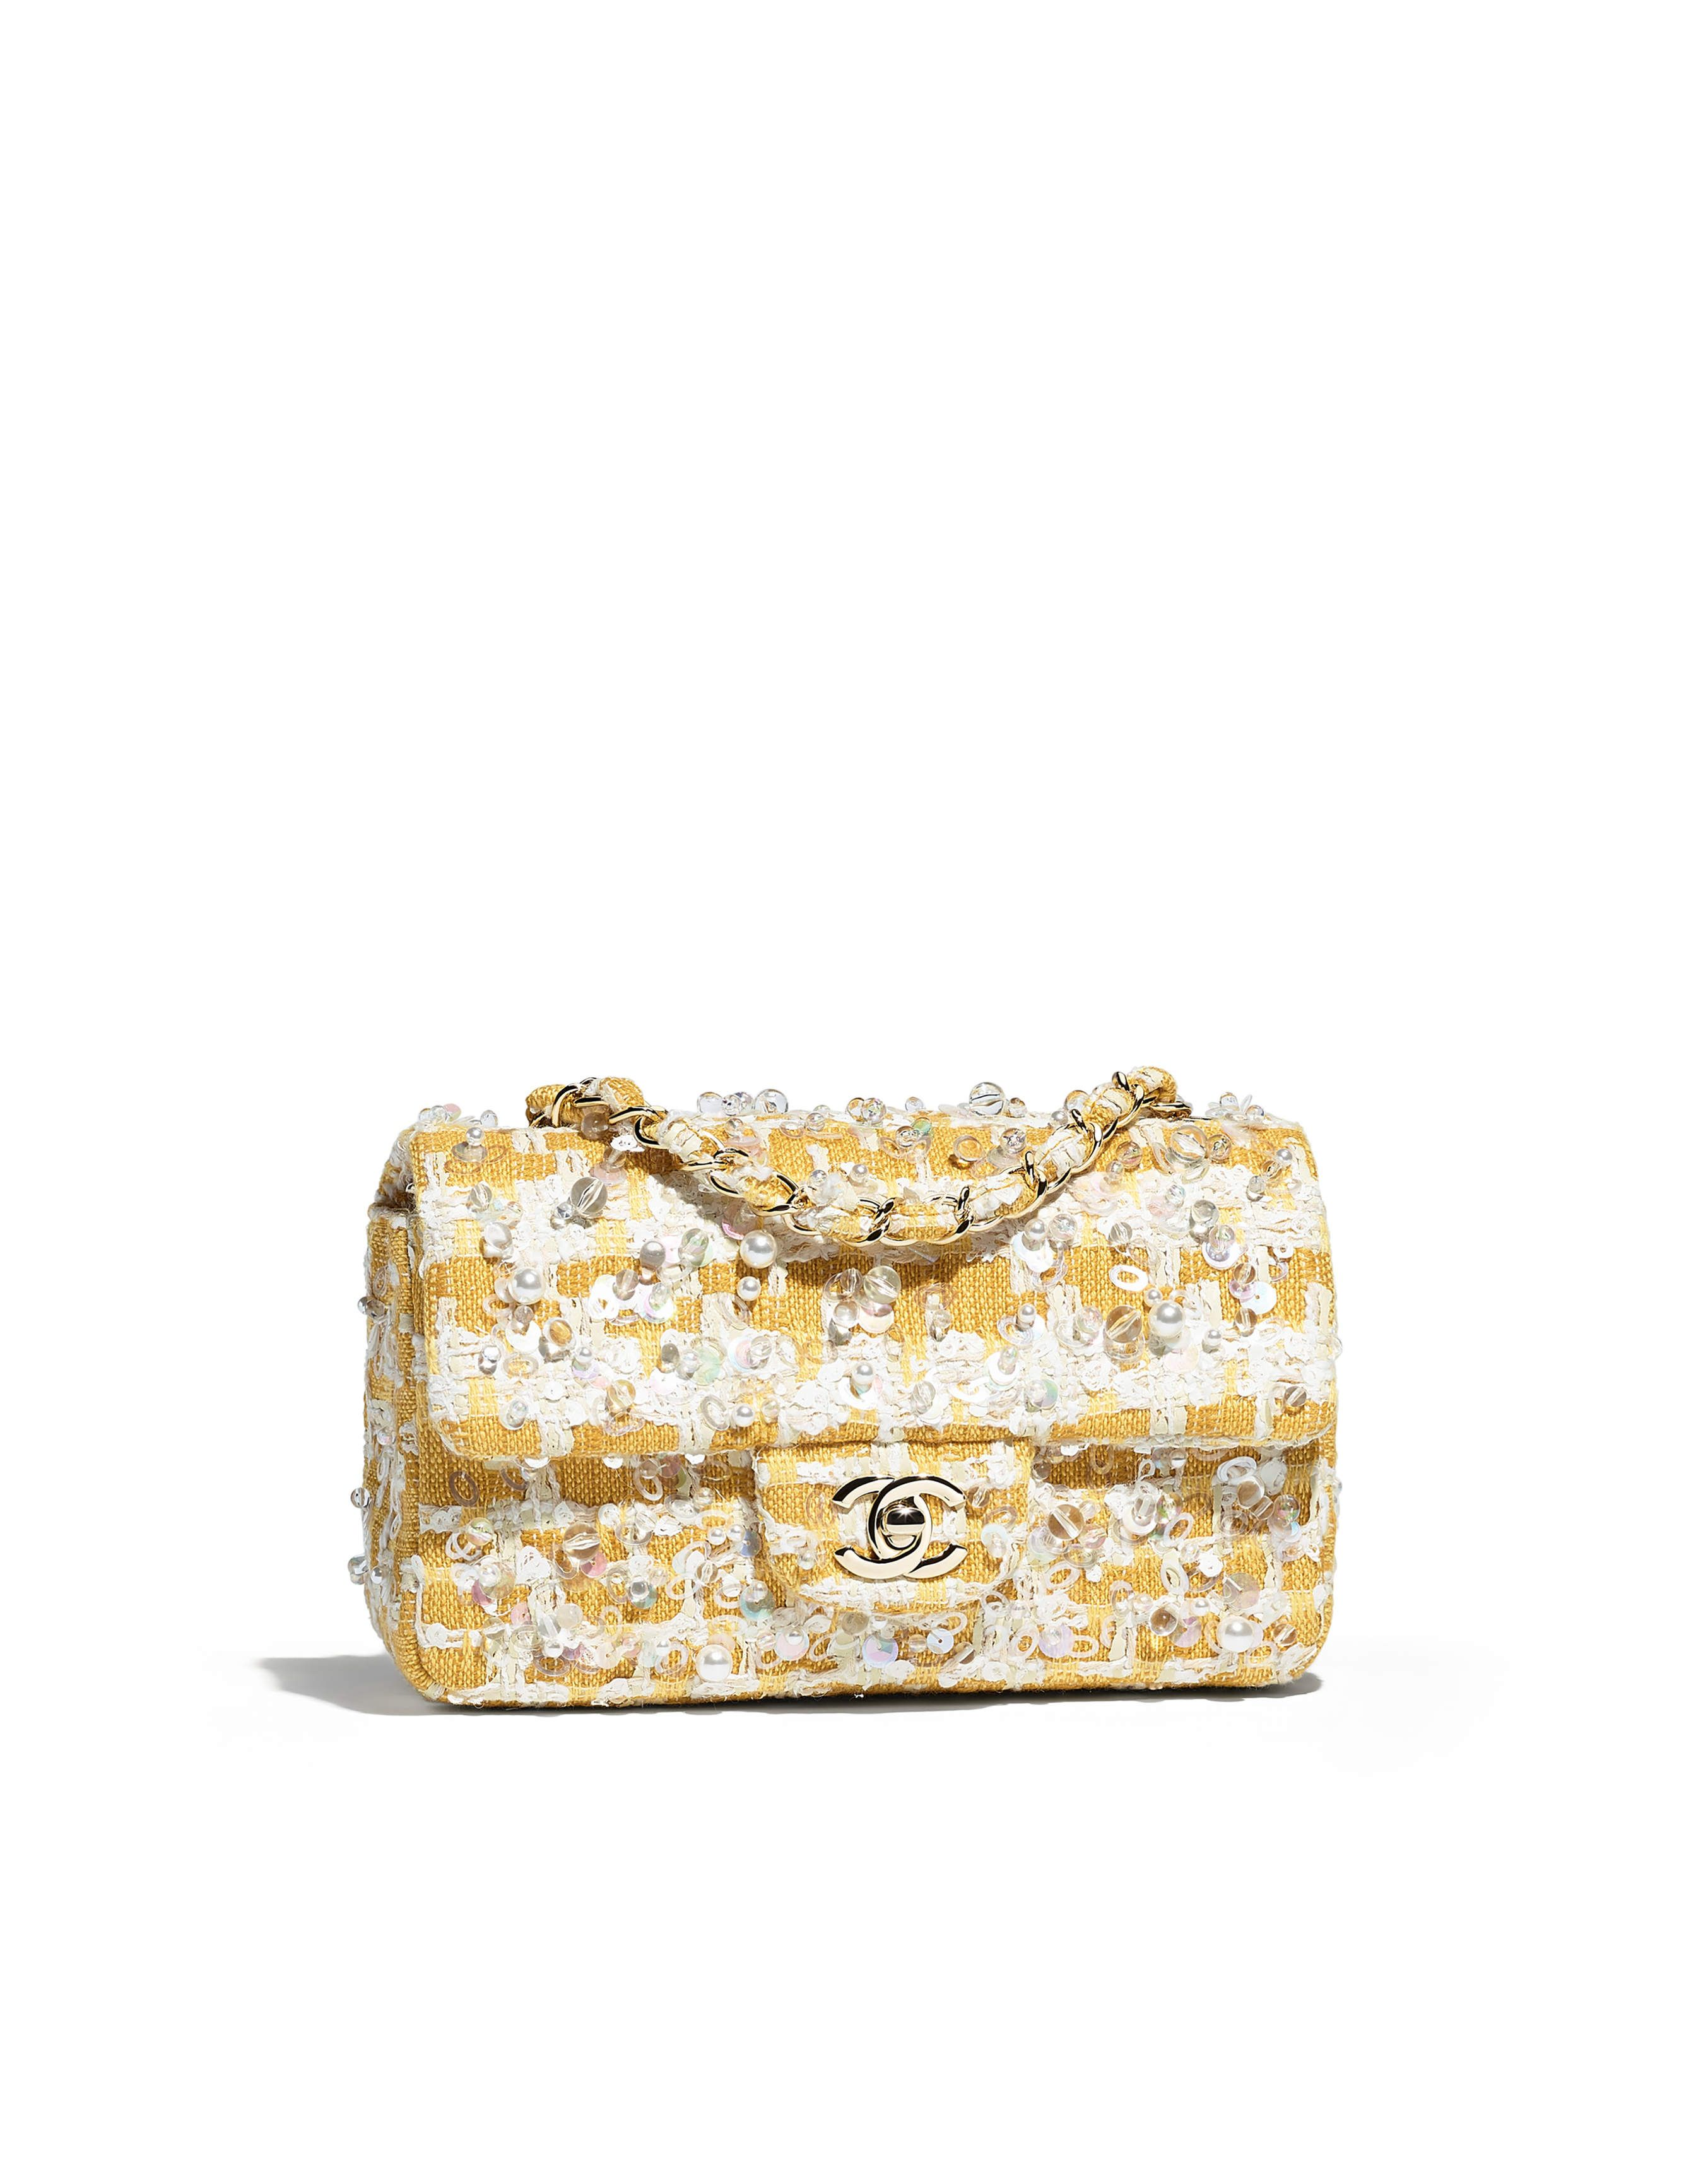 d3411005721b33 Mini flap bag, embroidered tweed & gold-tone metal-yellow & white - CHANEL